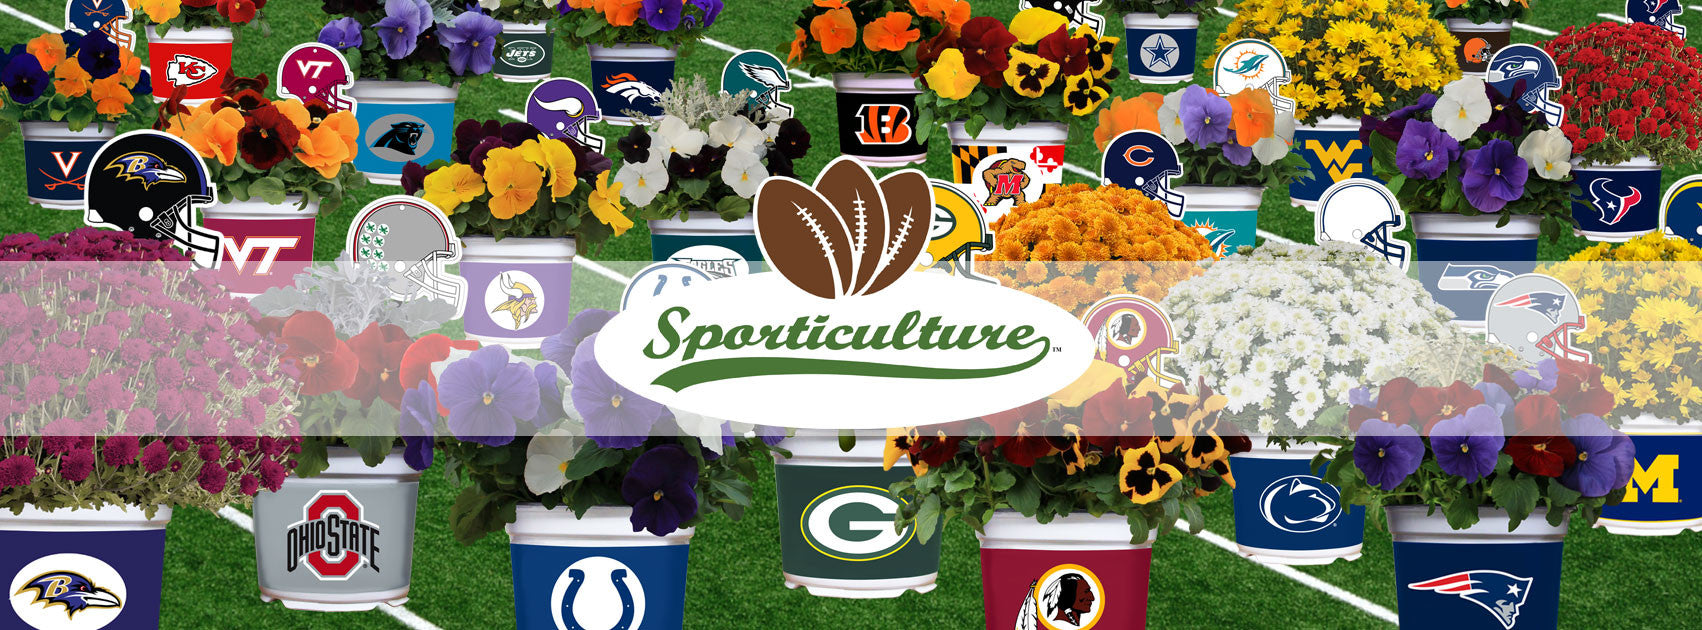 Sporticulture™ All Products Headed Image - Examples Of Many Sporticulture™ Flowers